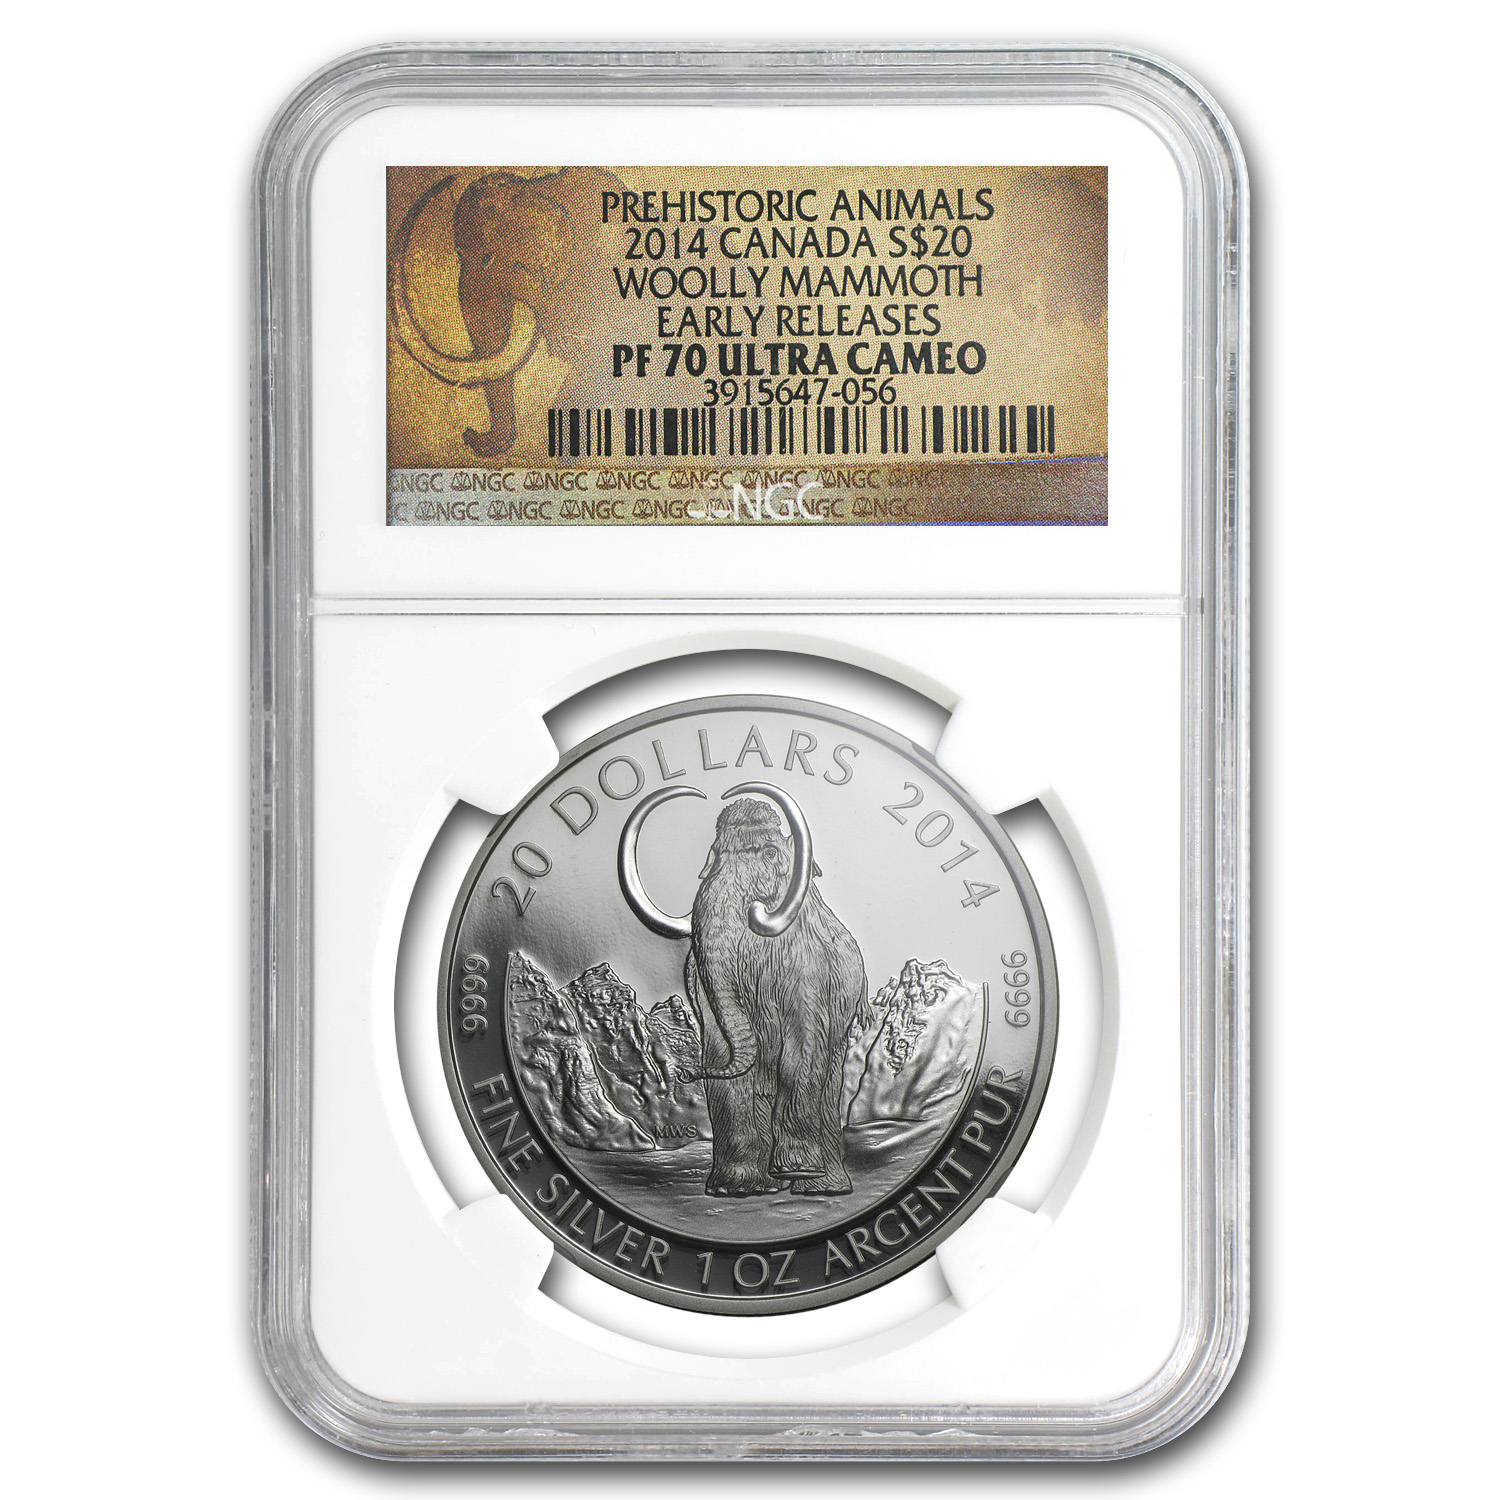 2014 Canada 1 oz Proof Silver $20 The Woolly Mammoth PF-70 NGC